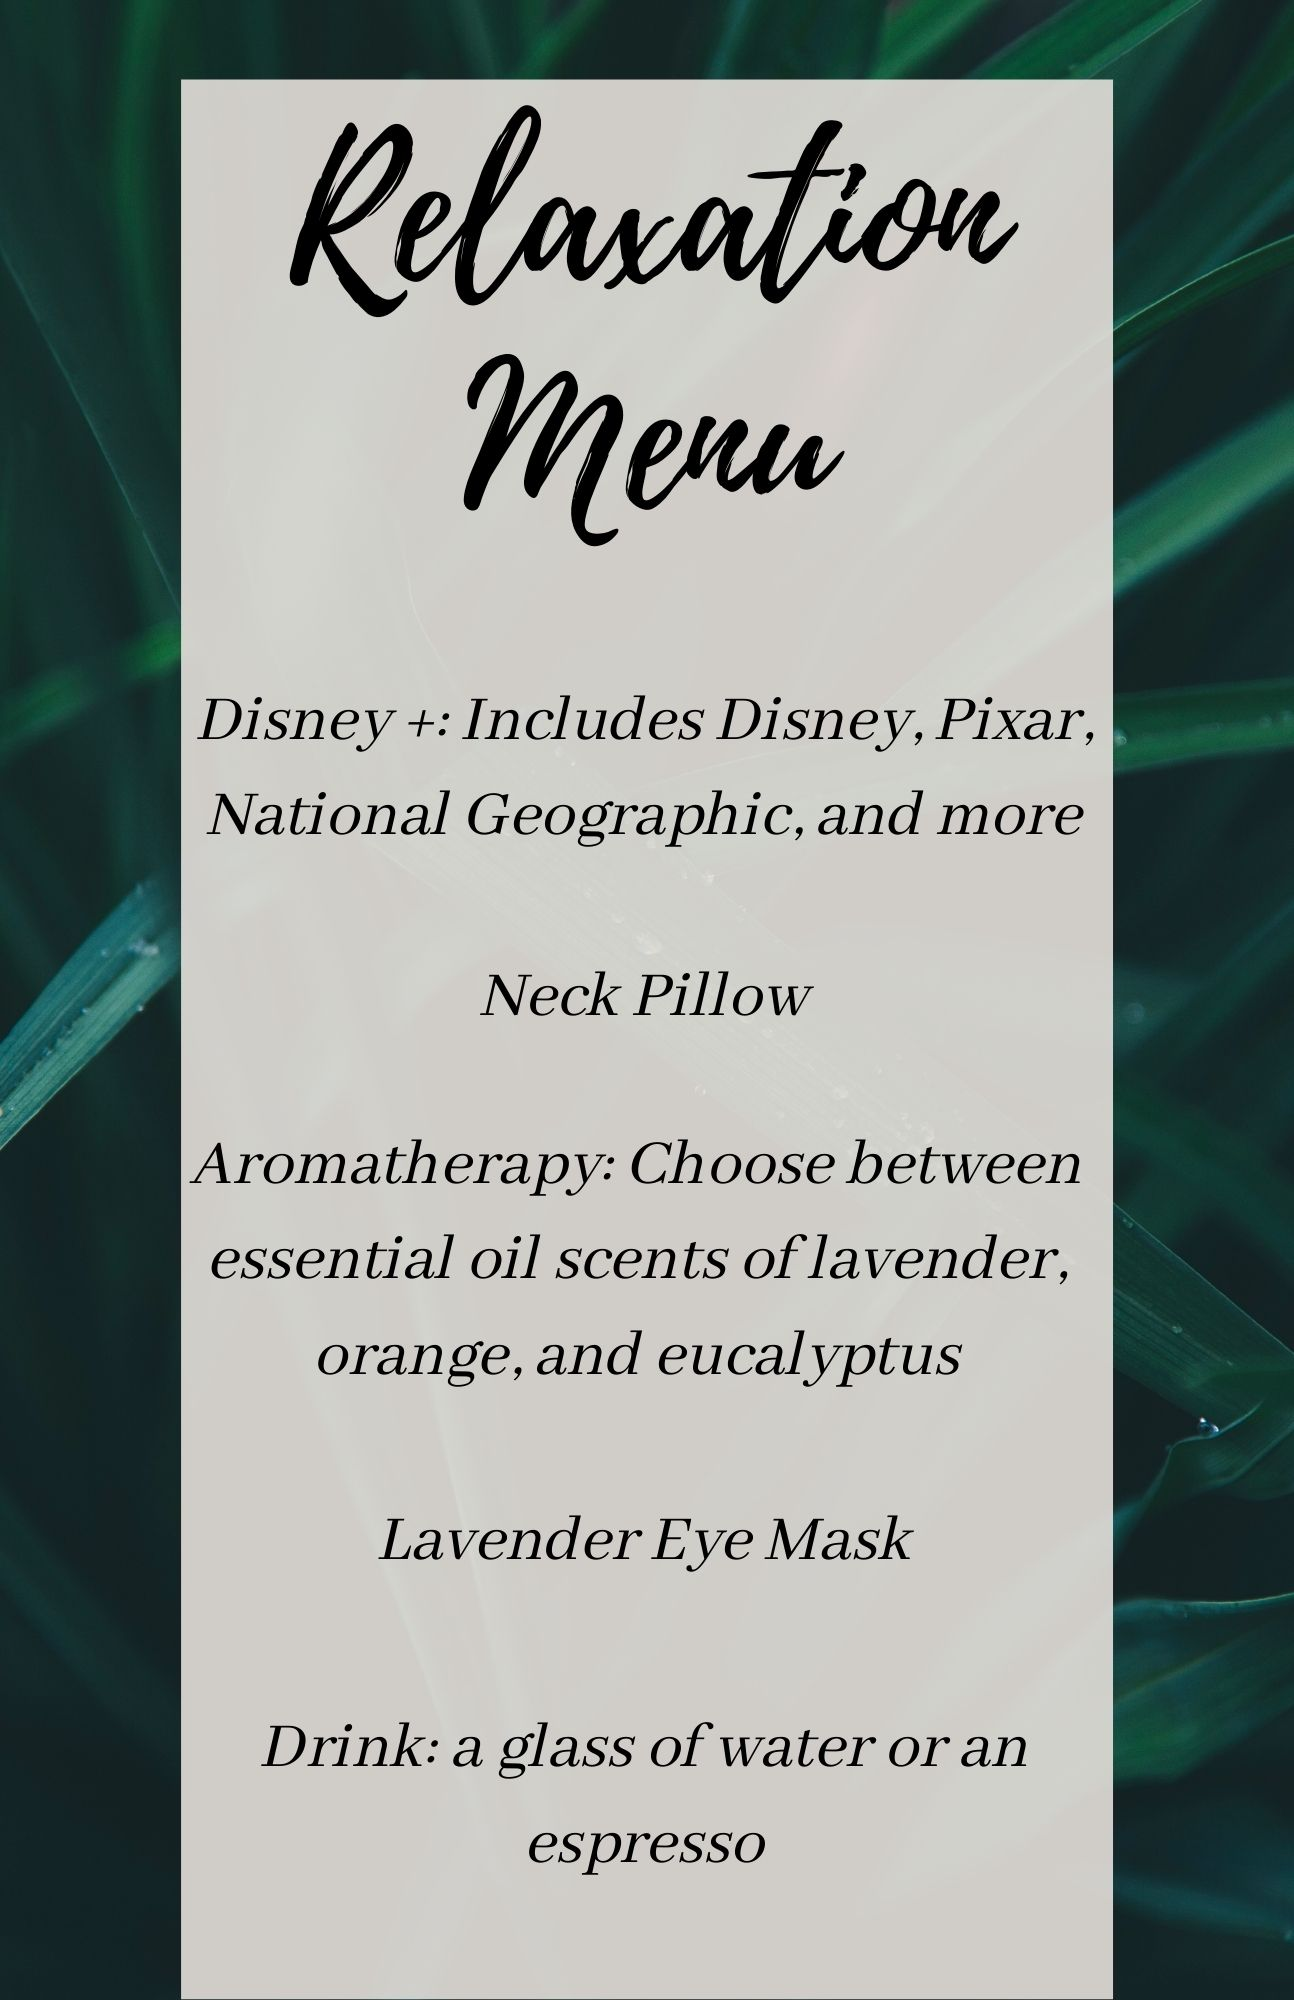 relaxation menu without nitrous